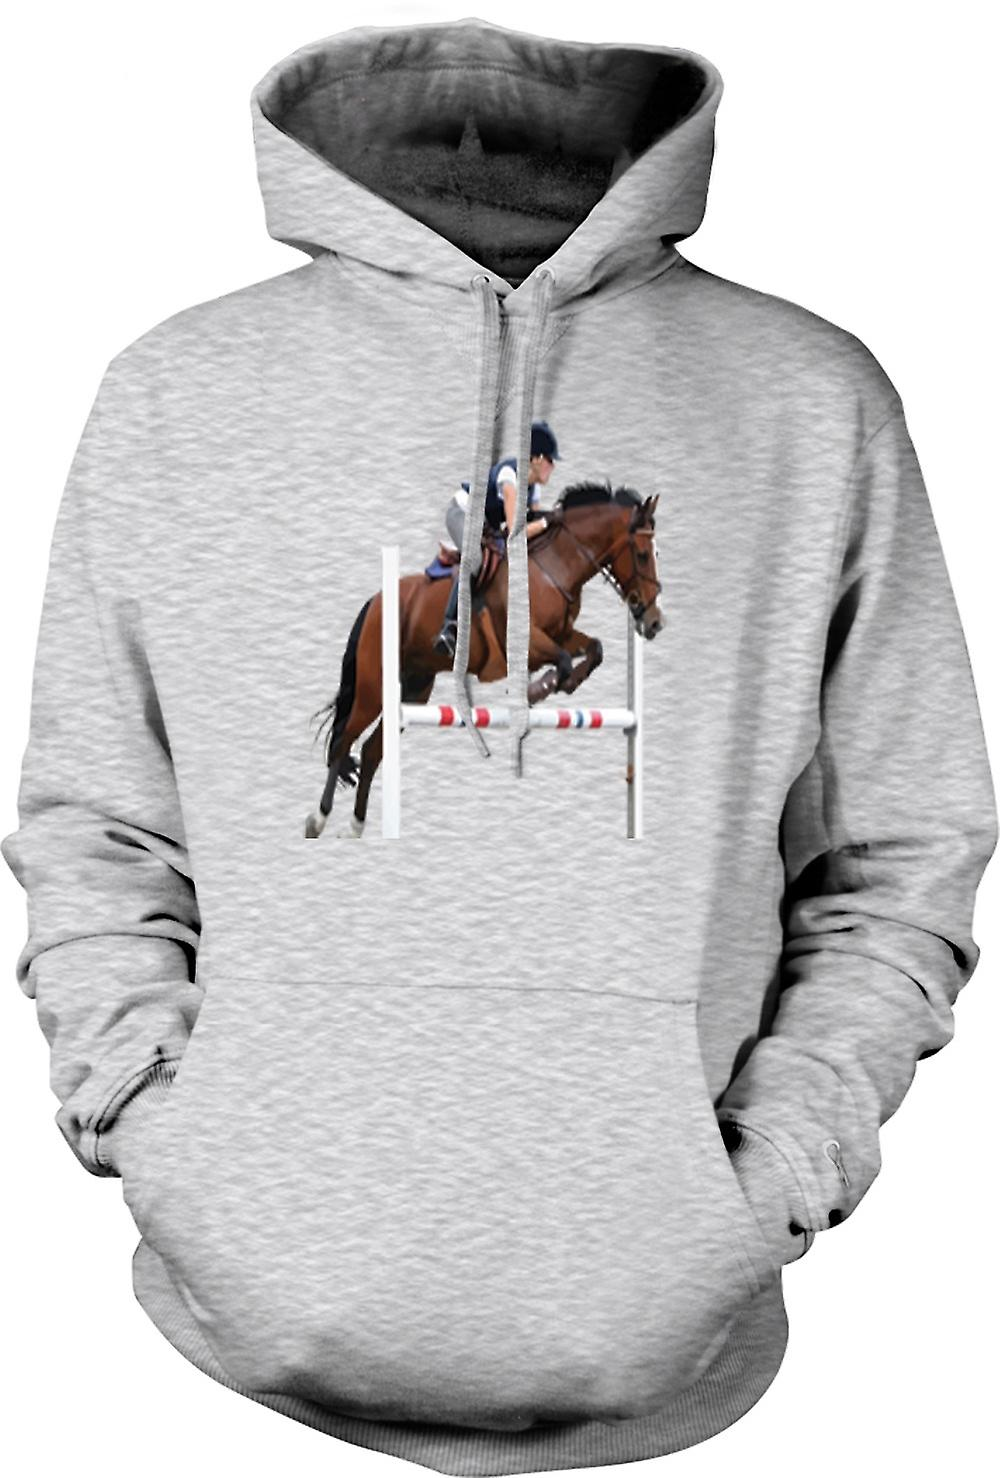 Mens Hoodie - Show Jumping Horse